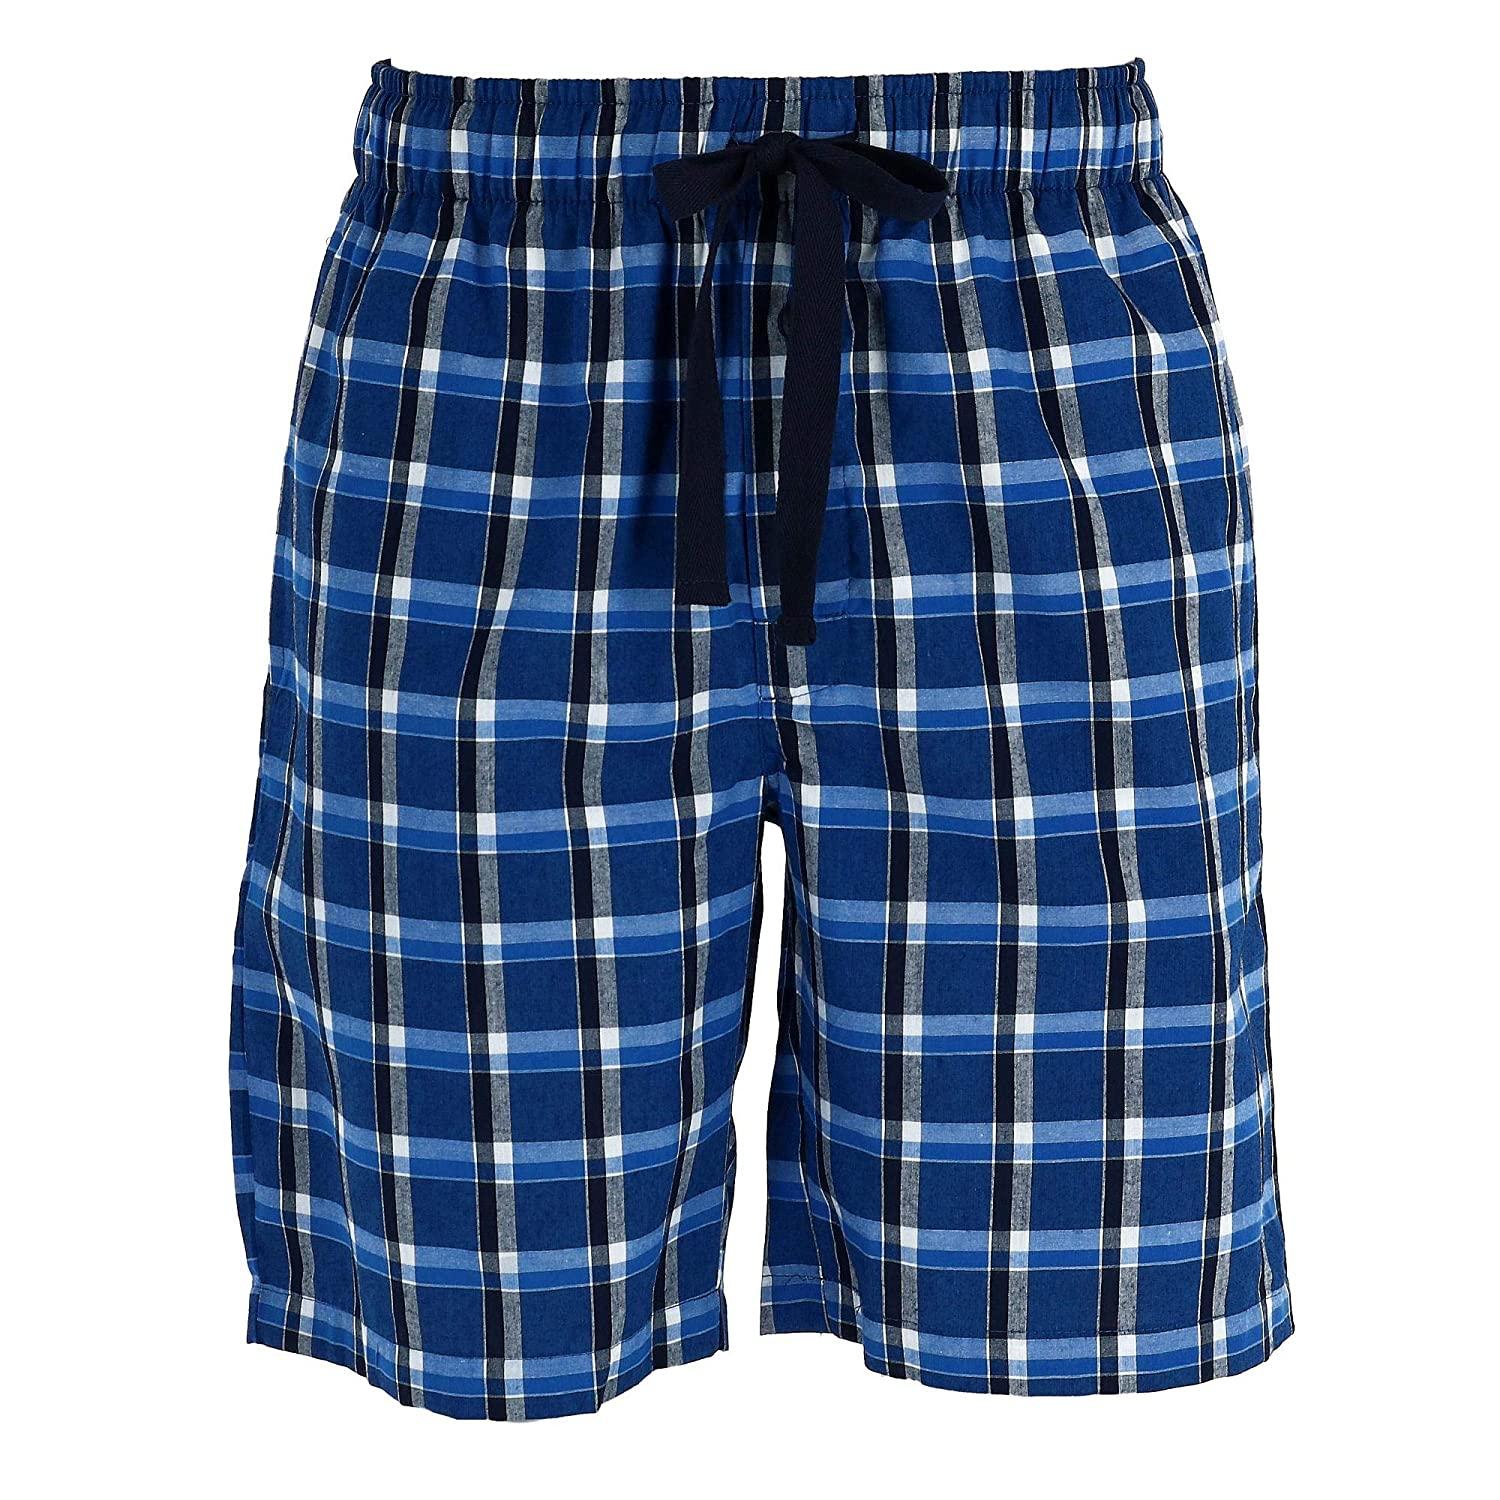 Fruit of the Loom Men's Big and Tall Microsanded Woven Sleep Short